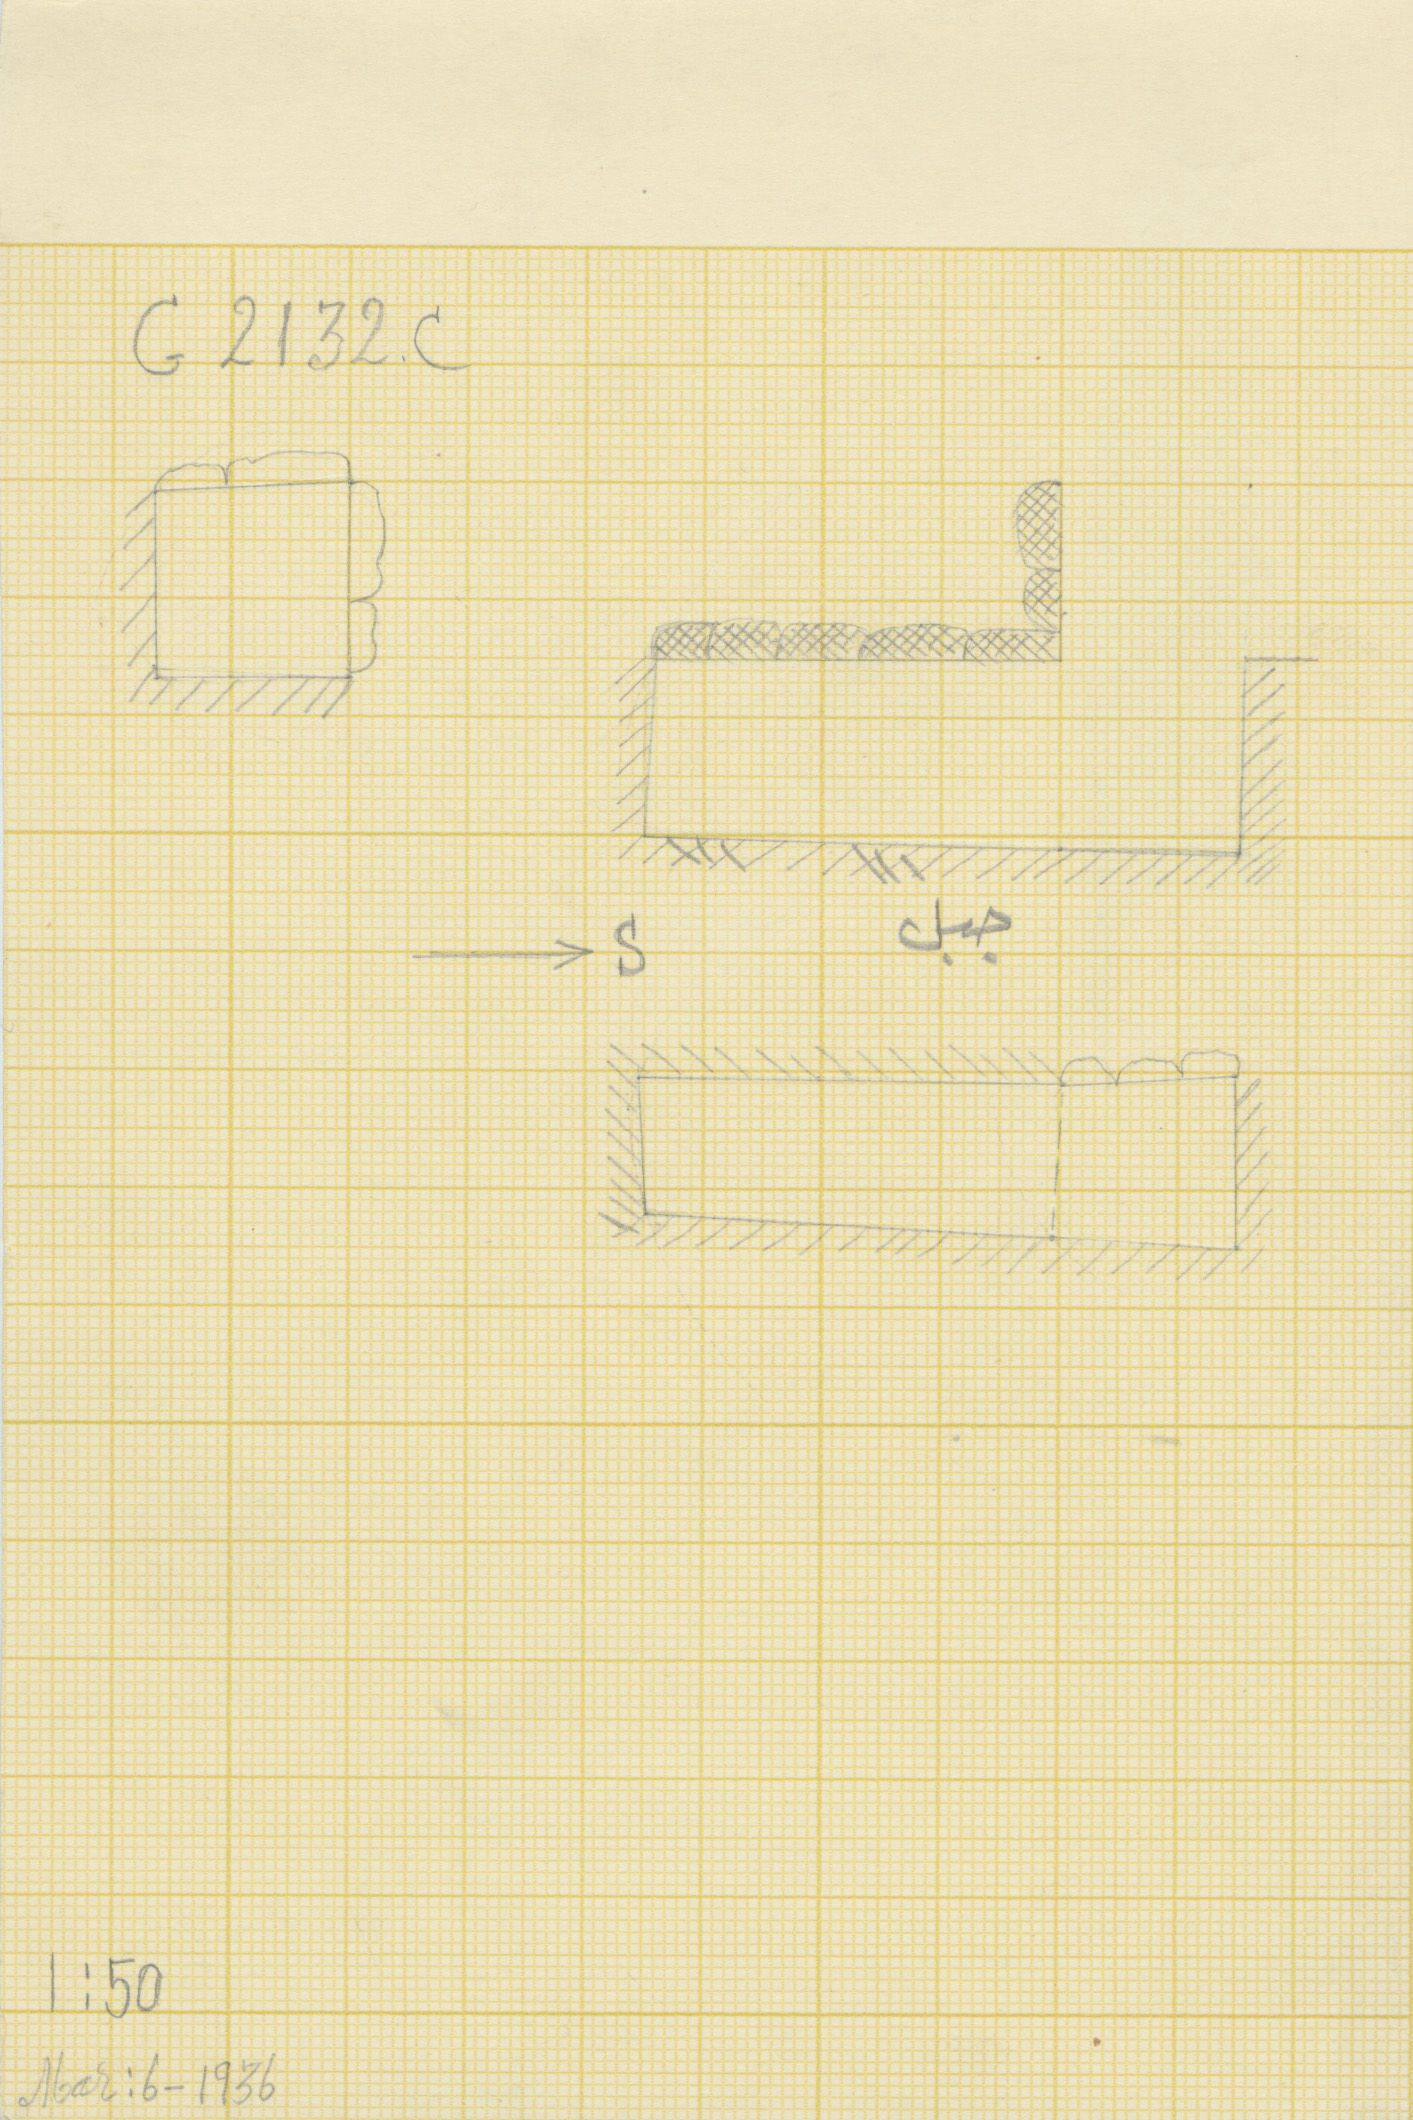 Maps and plans: G 2132, Shaft C